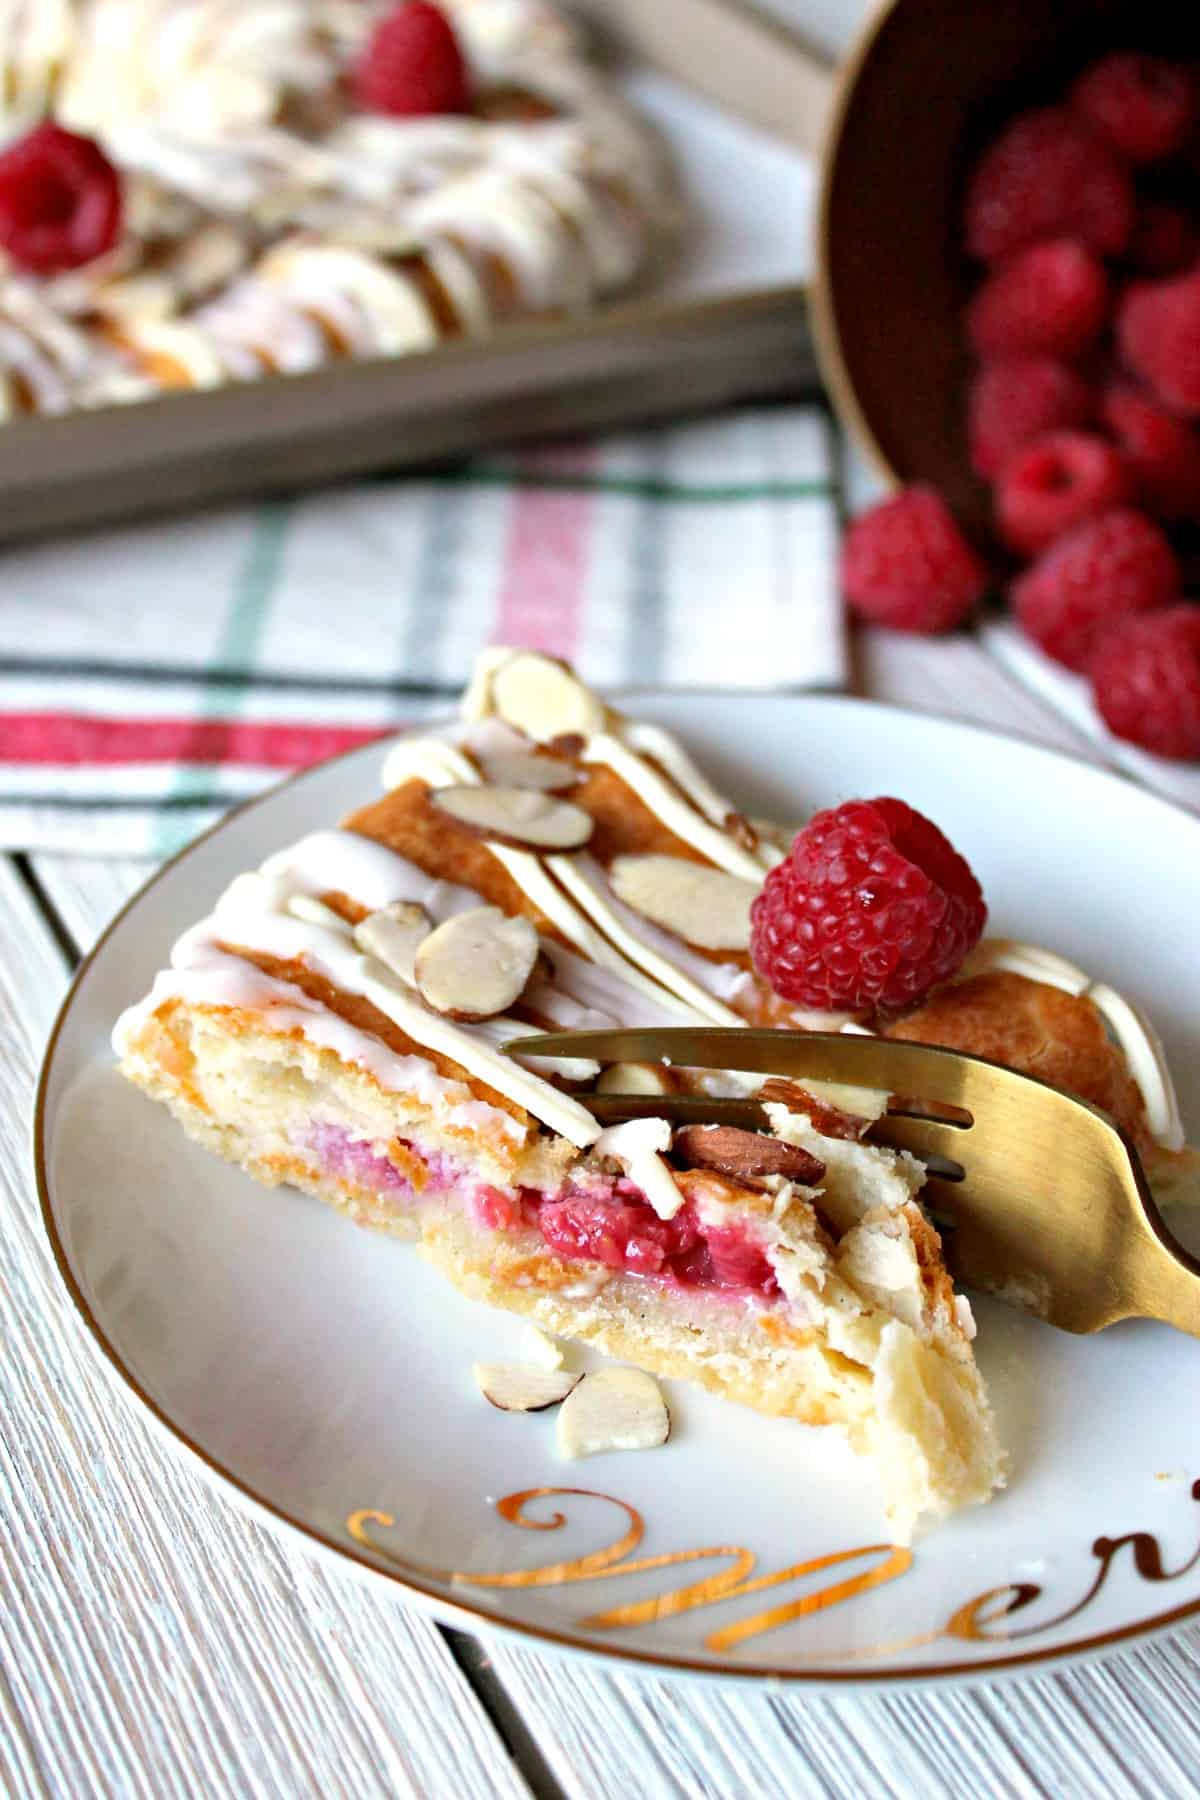 Raspberry White Chocolate Almond Kringle! Beautiful pastry studded with fresh raspberries, sweet drizzle & crunchy almonds. A perfect holiday breakfast.